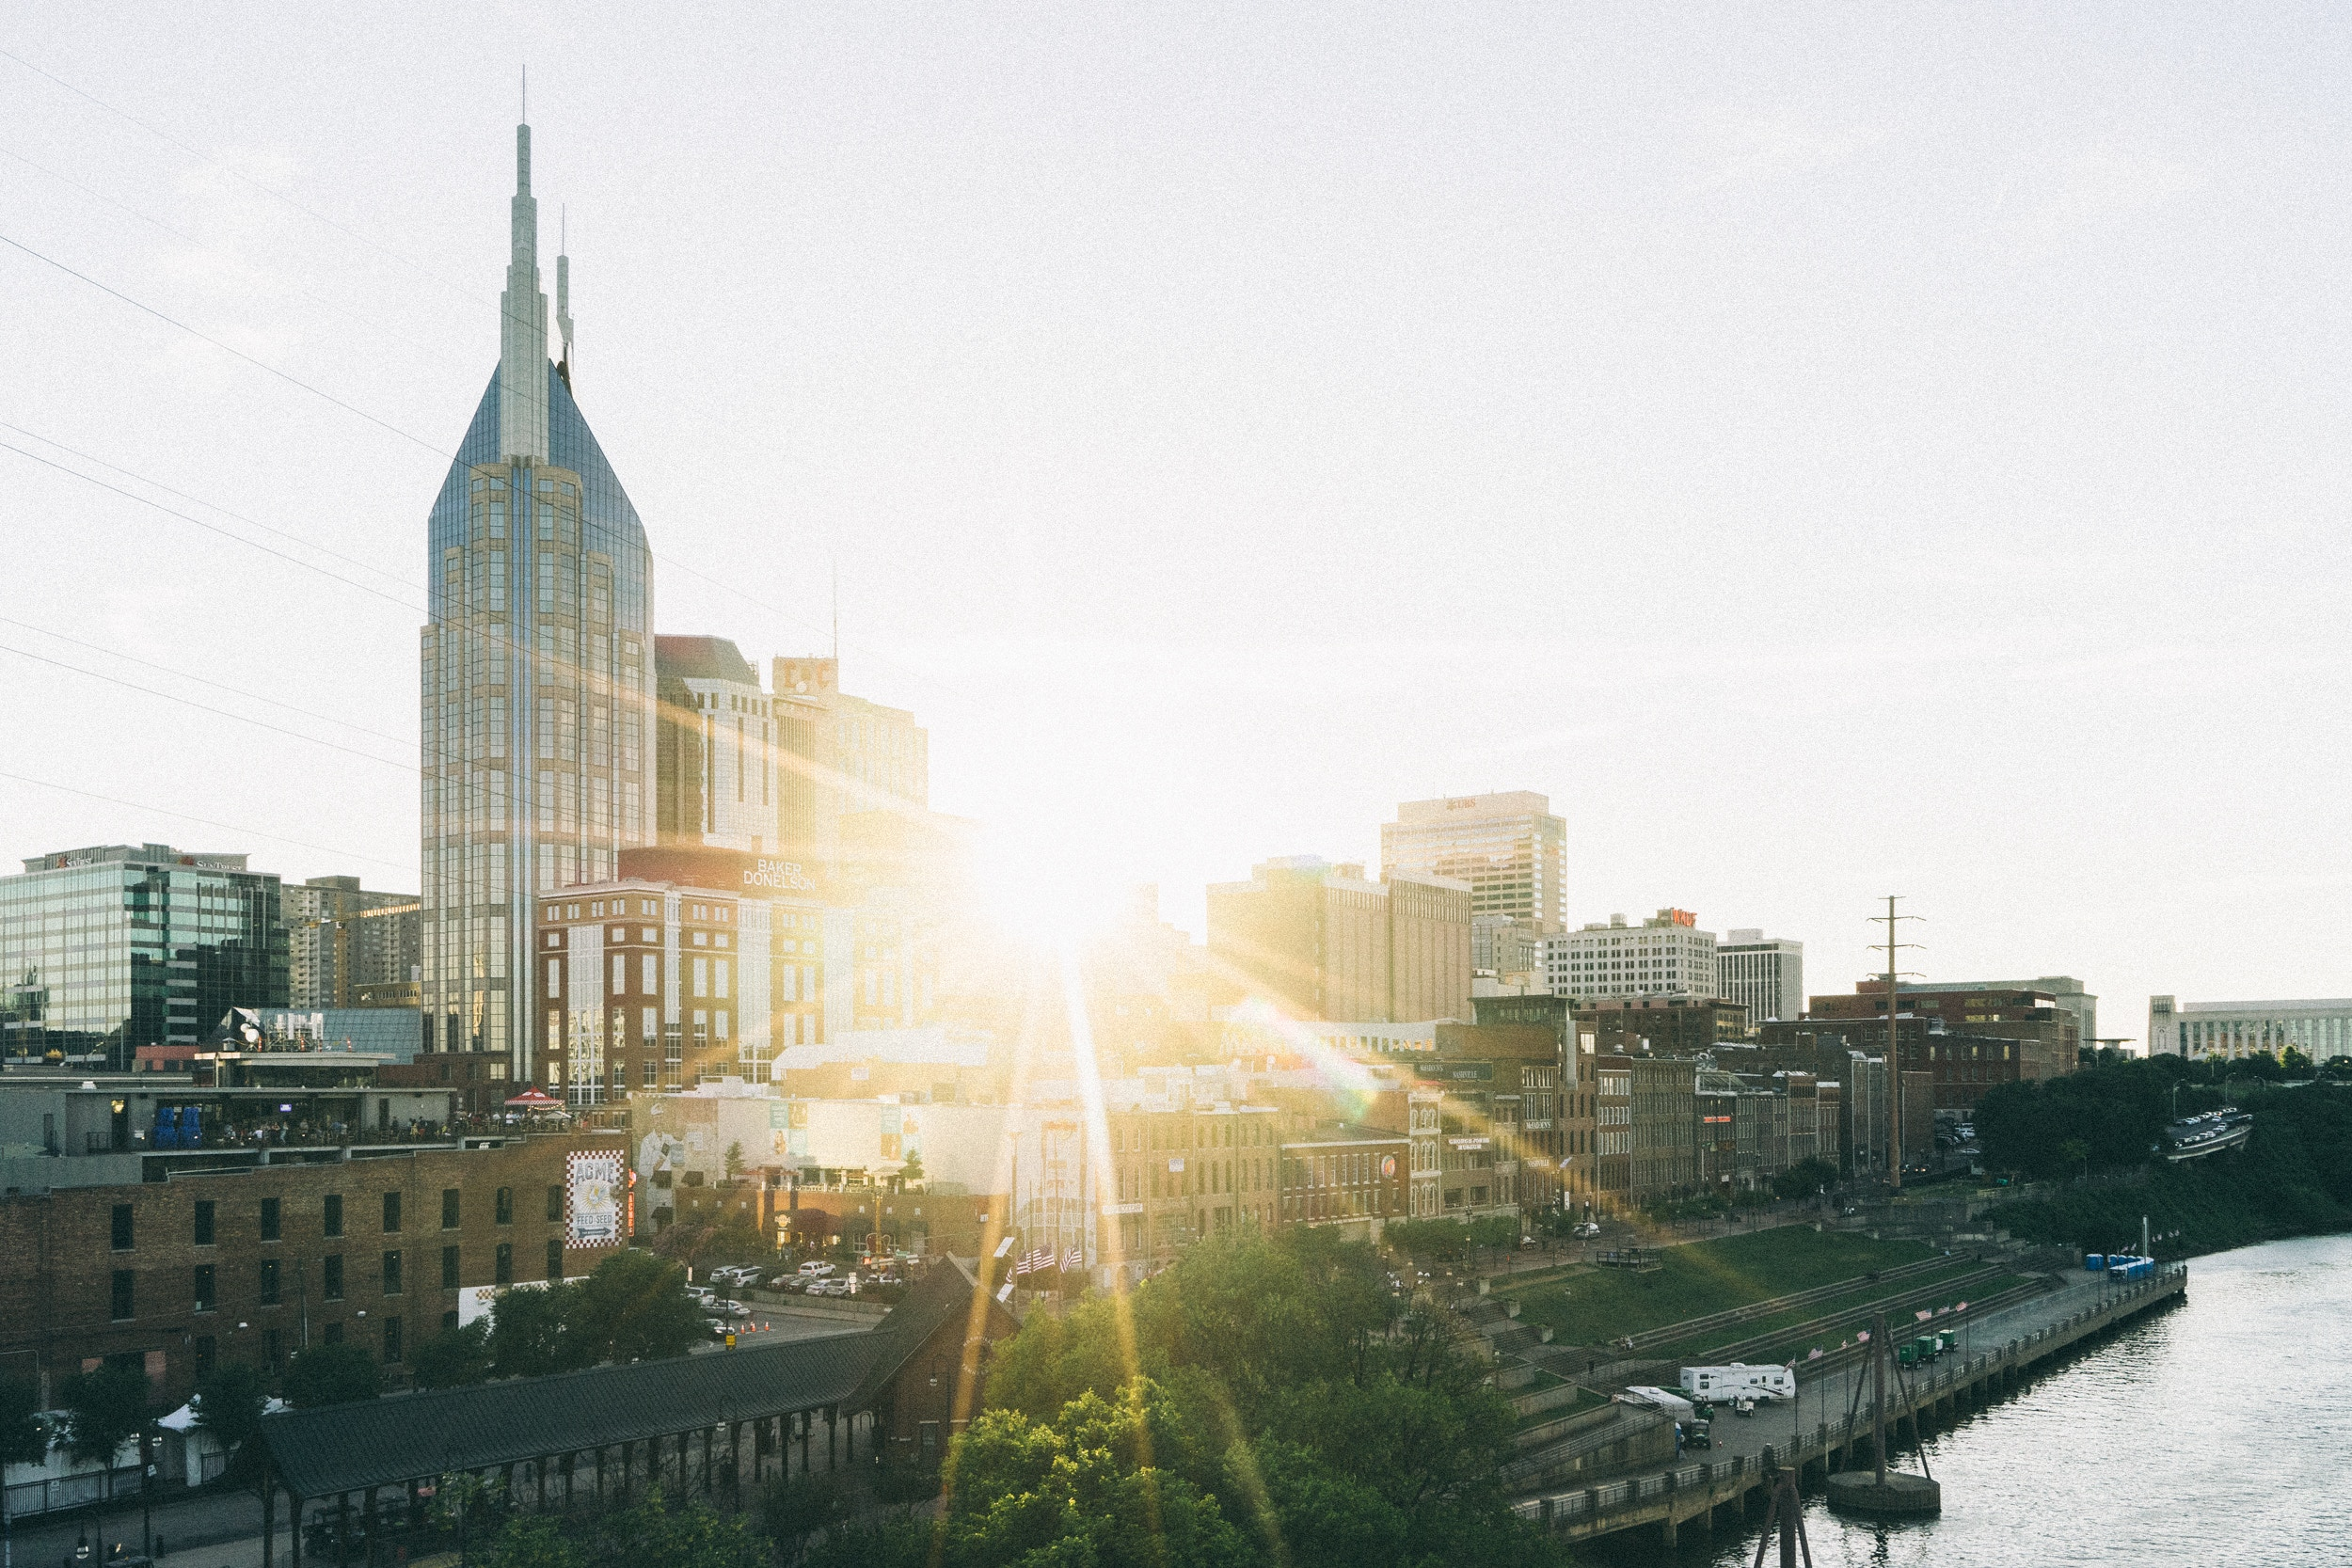 nashville skyline with sun beaming through the buildings and the at&t building stick out above all other buildings